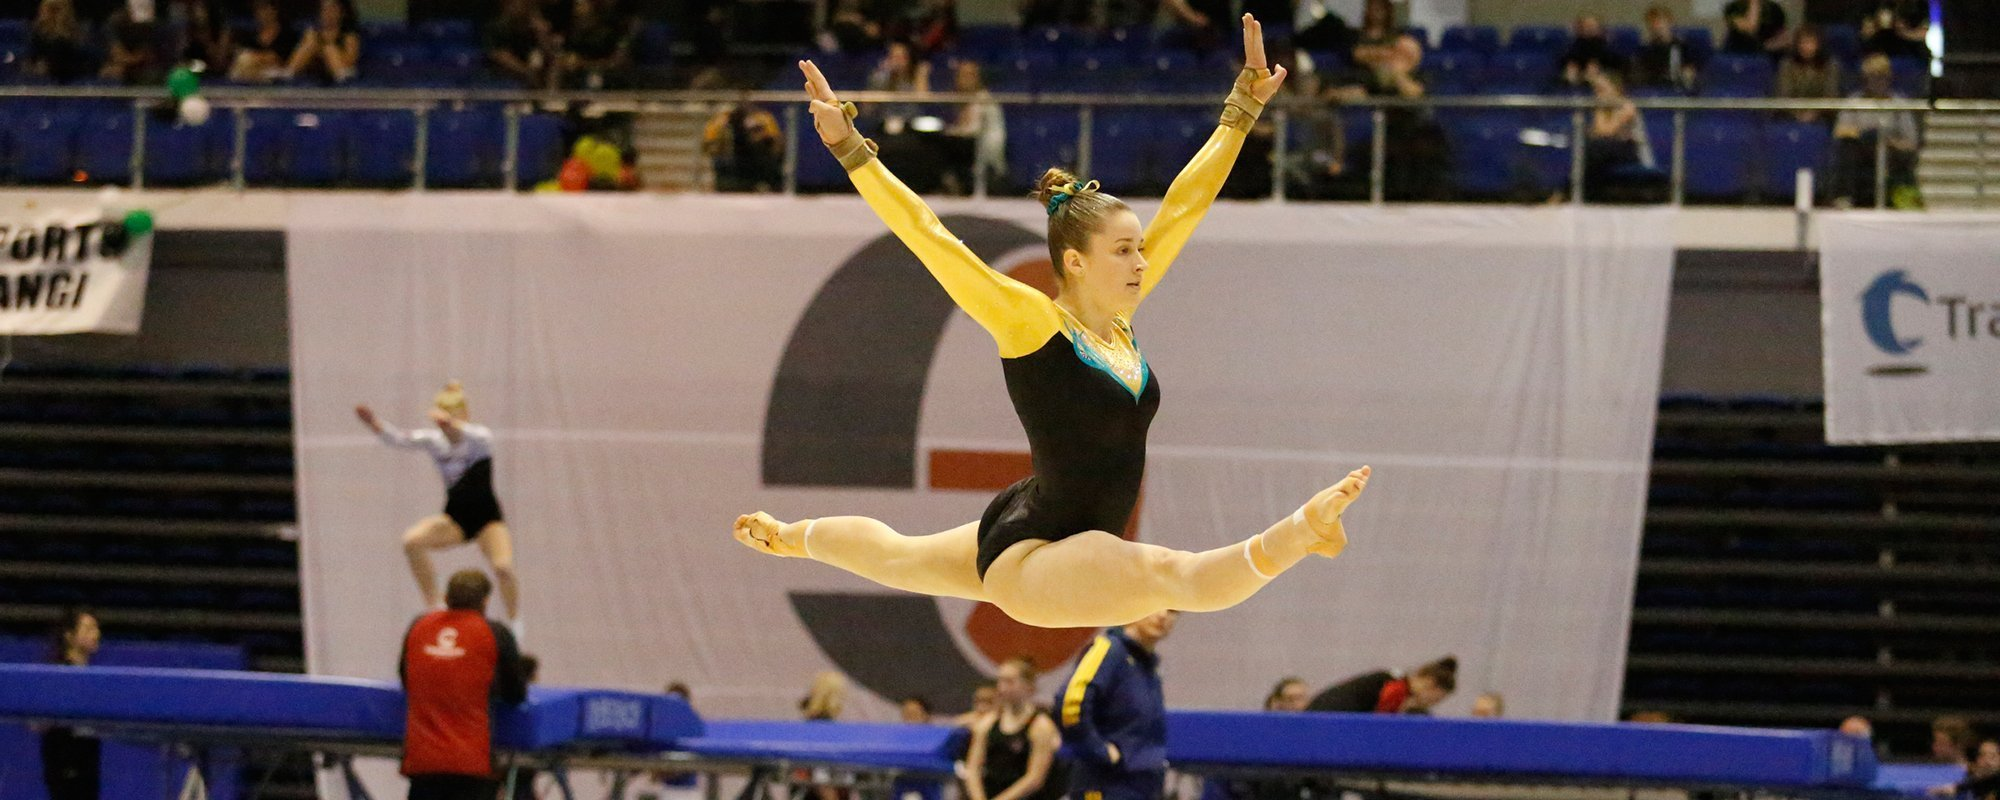 Young gymnast performing